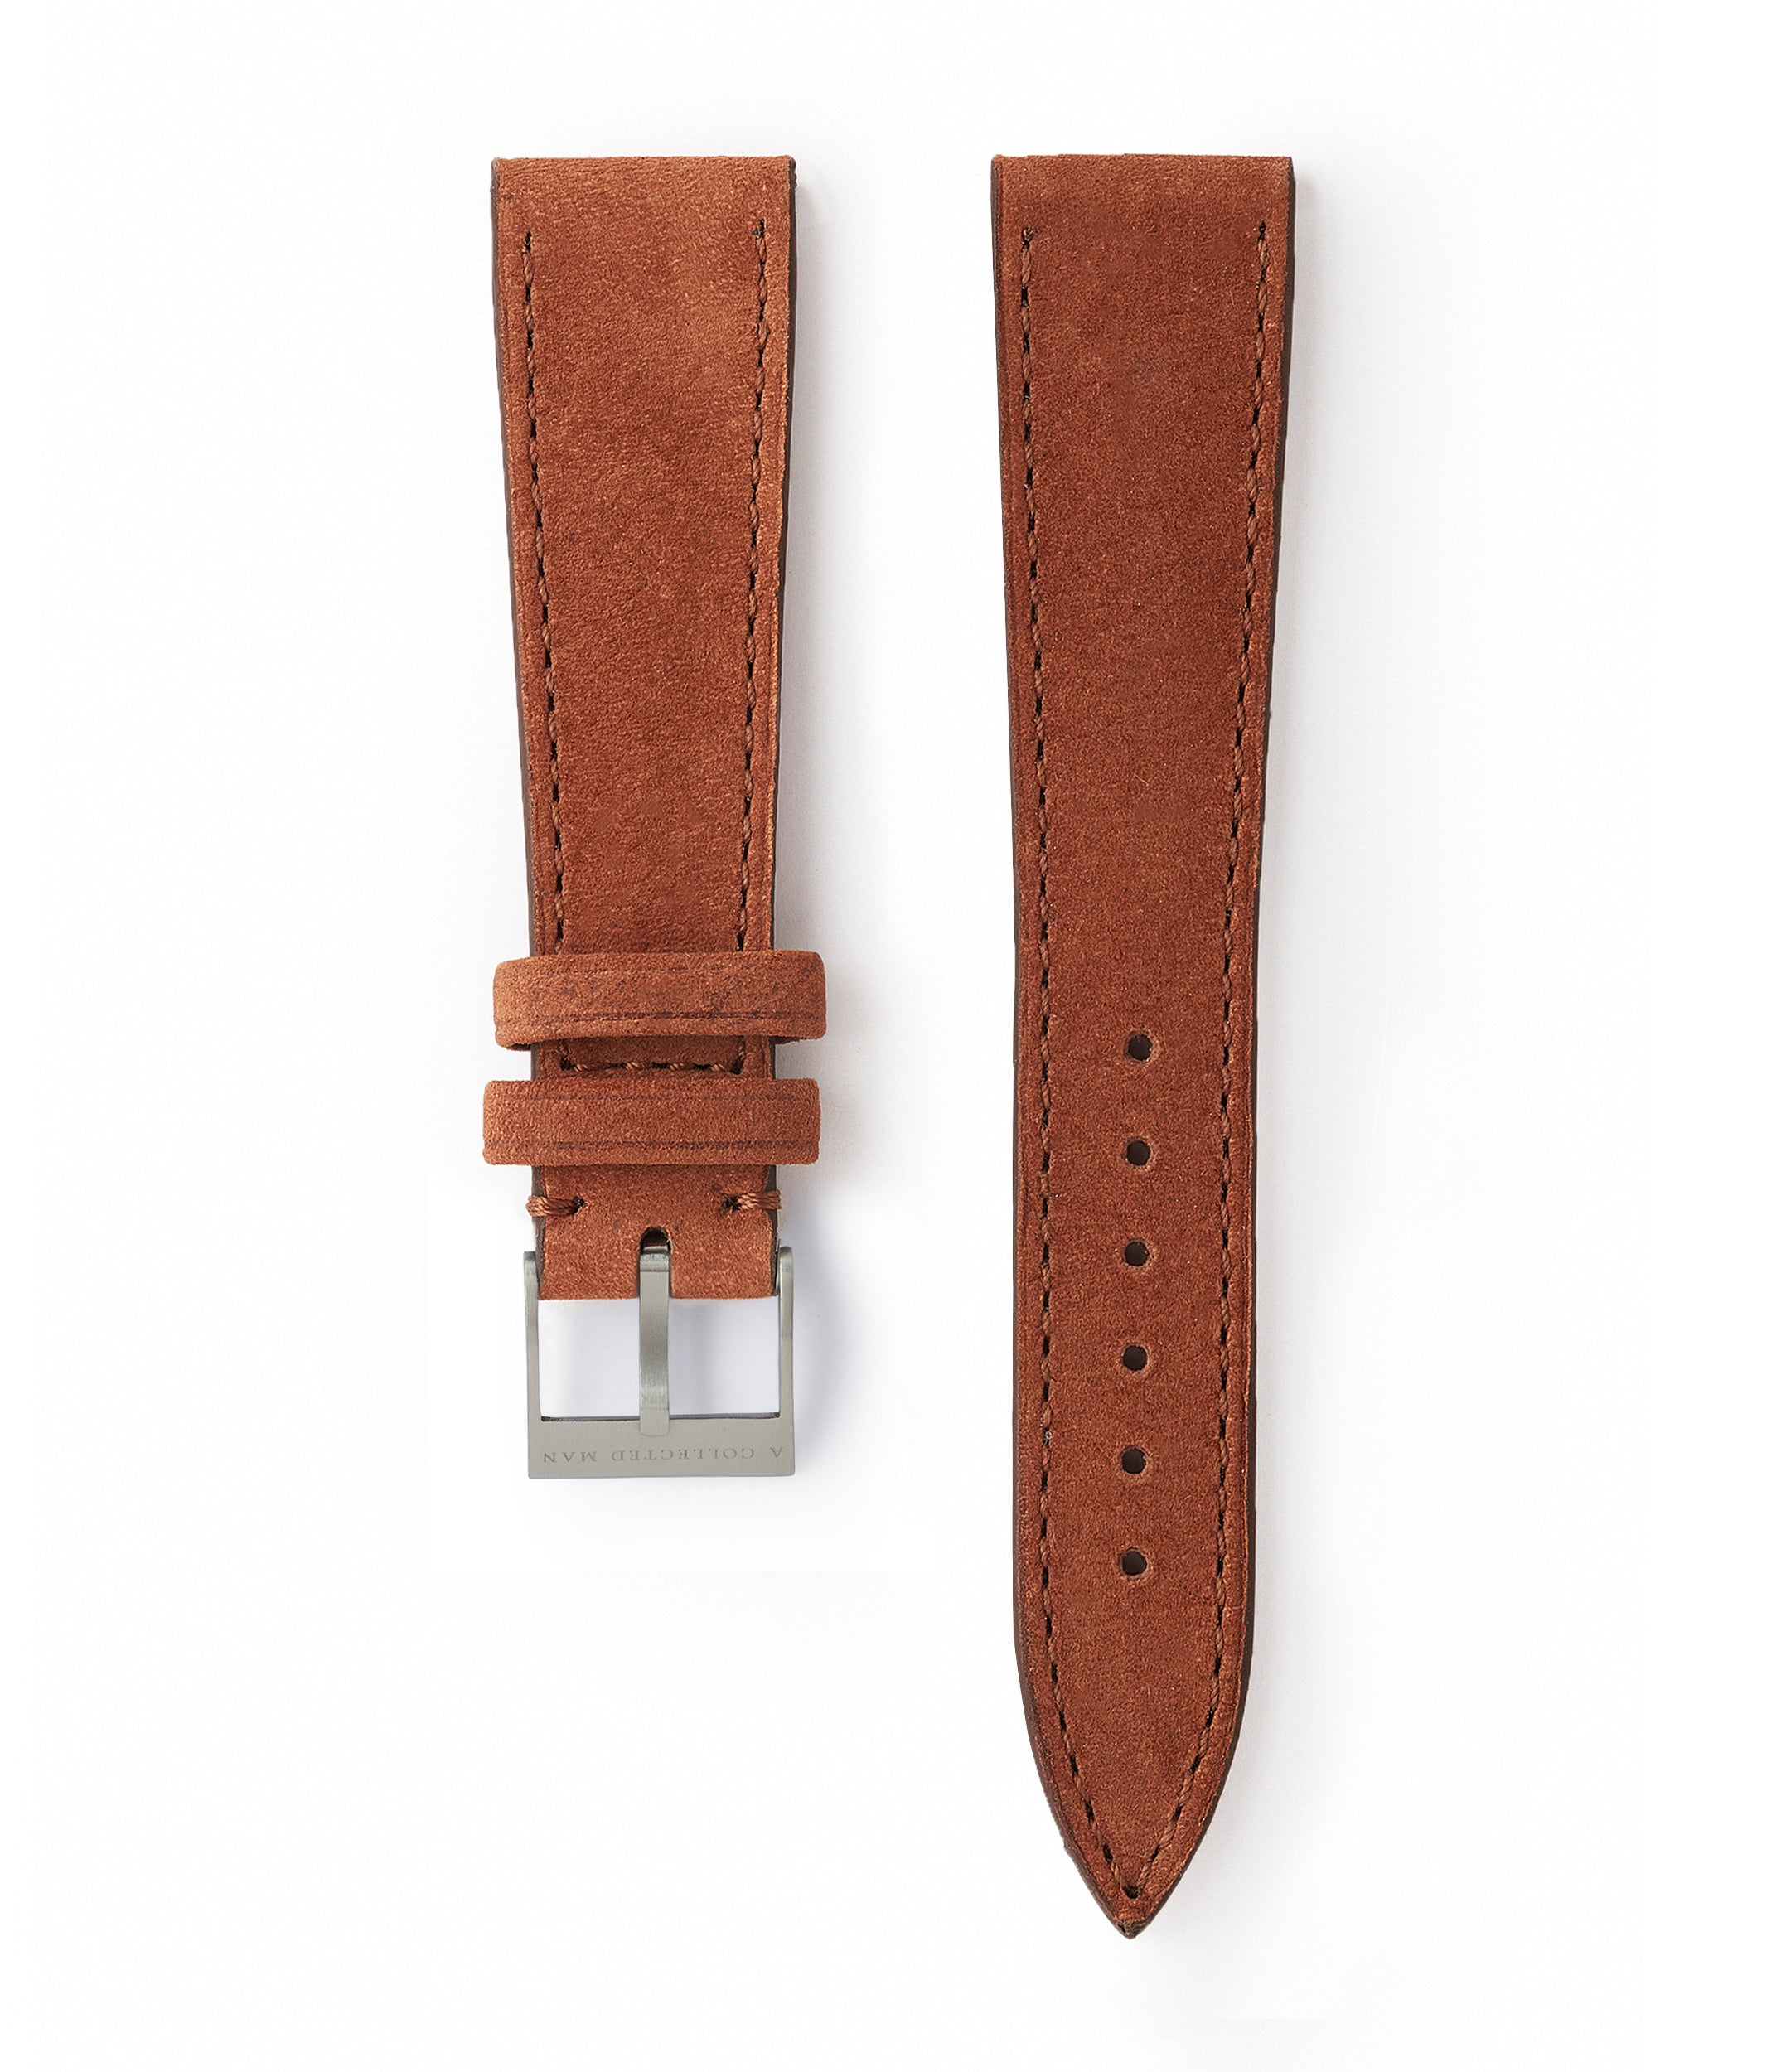 buy rust brown nubuck leather watch strap Bordeaux Molequin for sale order online at A Collected Man London